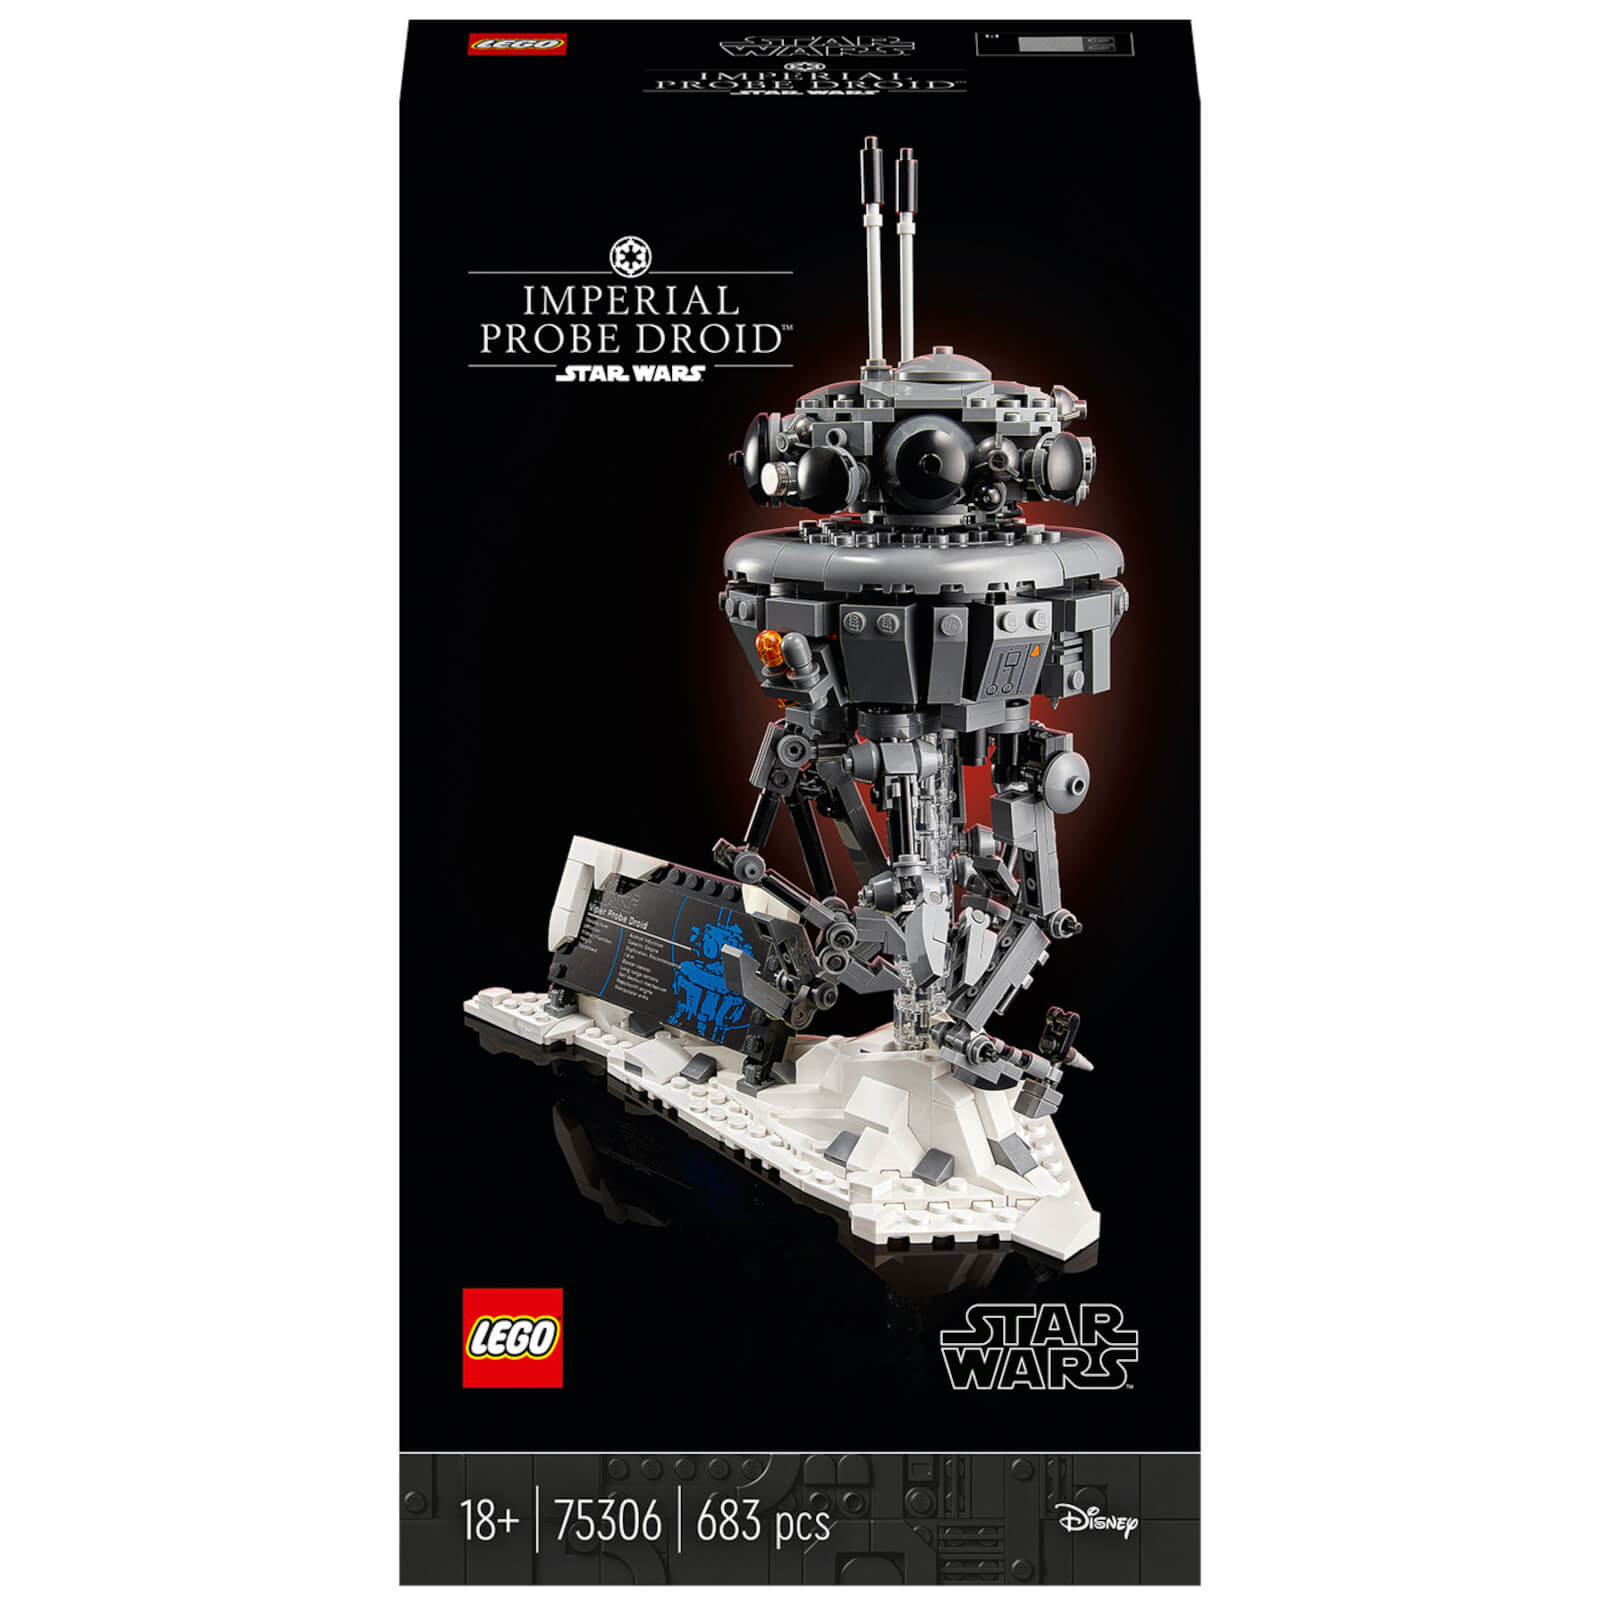 Image of LEGO Star Wars: Imperial Probe Droid Adult Building Set (75306)